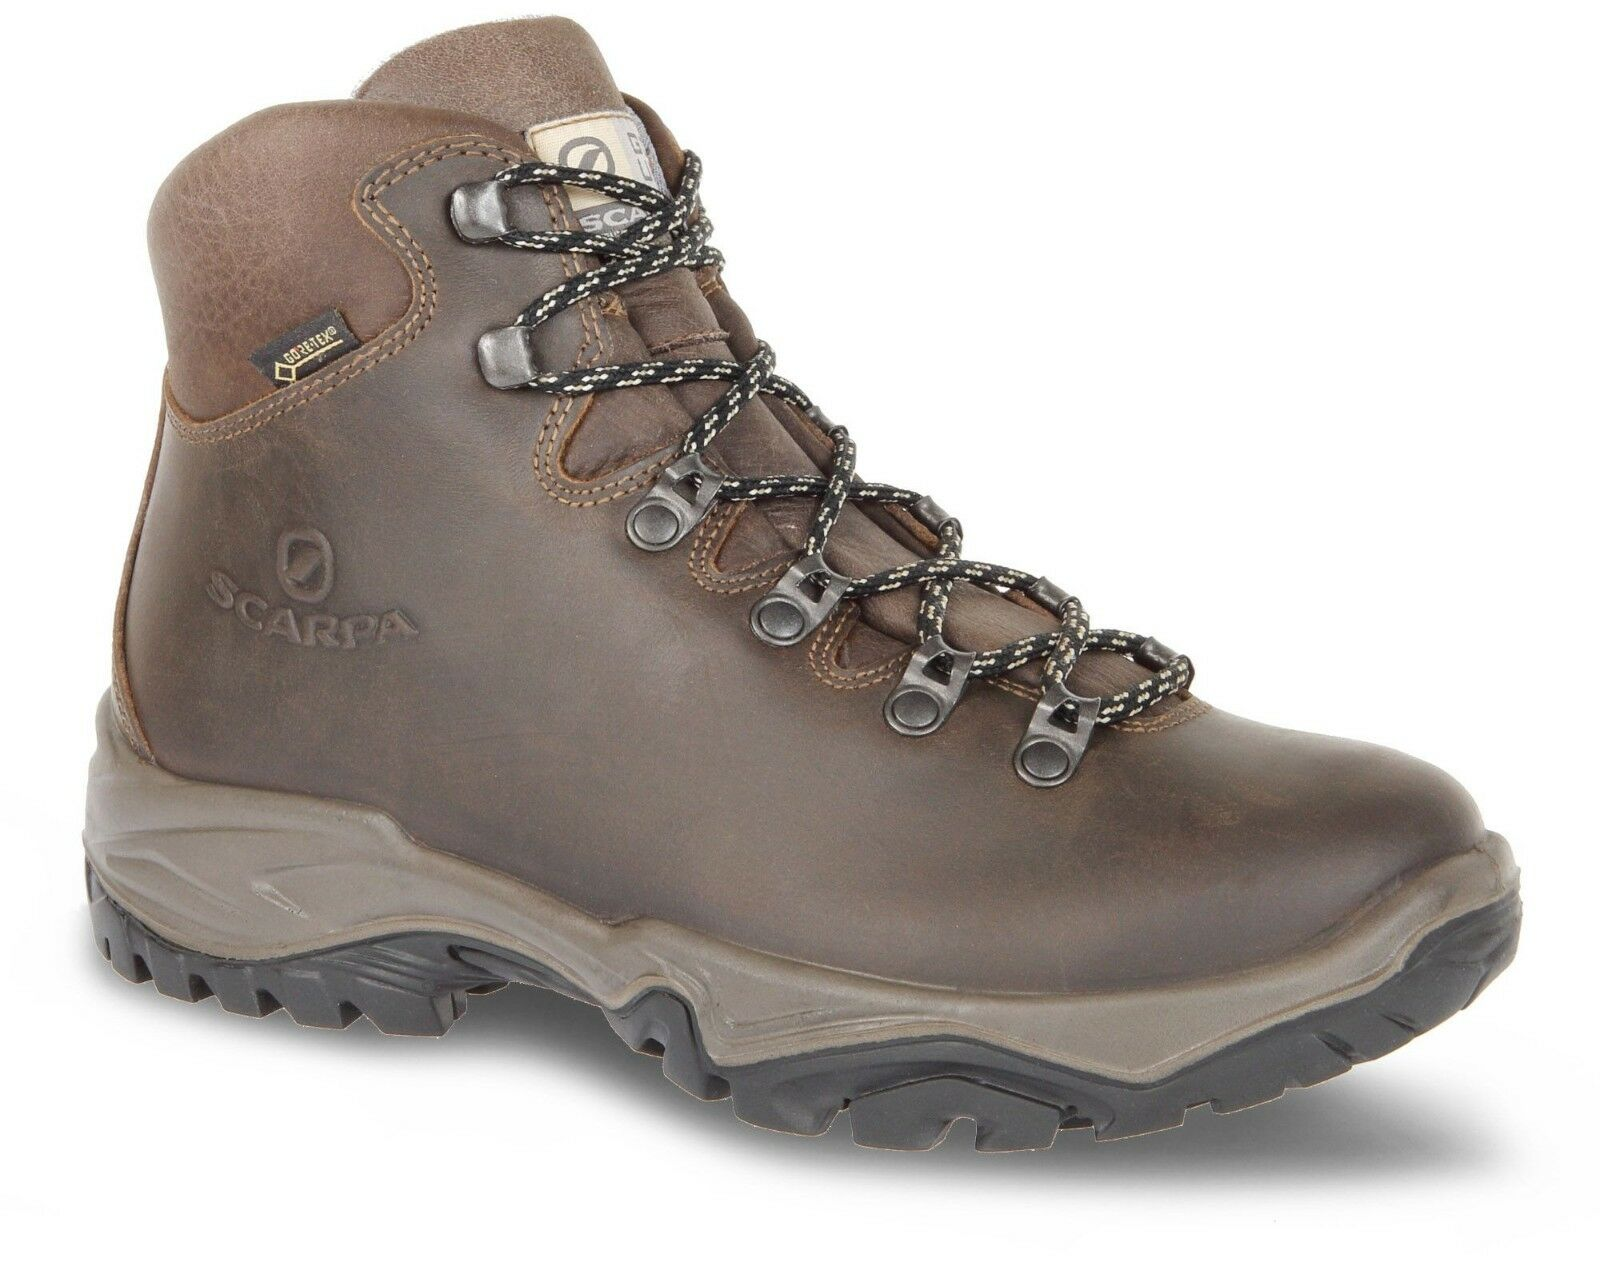 Scarpa 30020 202 Women's Terra GTX Brown Leather Gore-Tex Vibram Hiking Boots